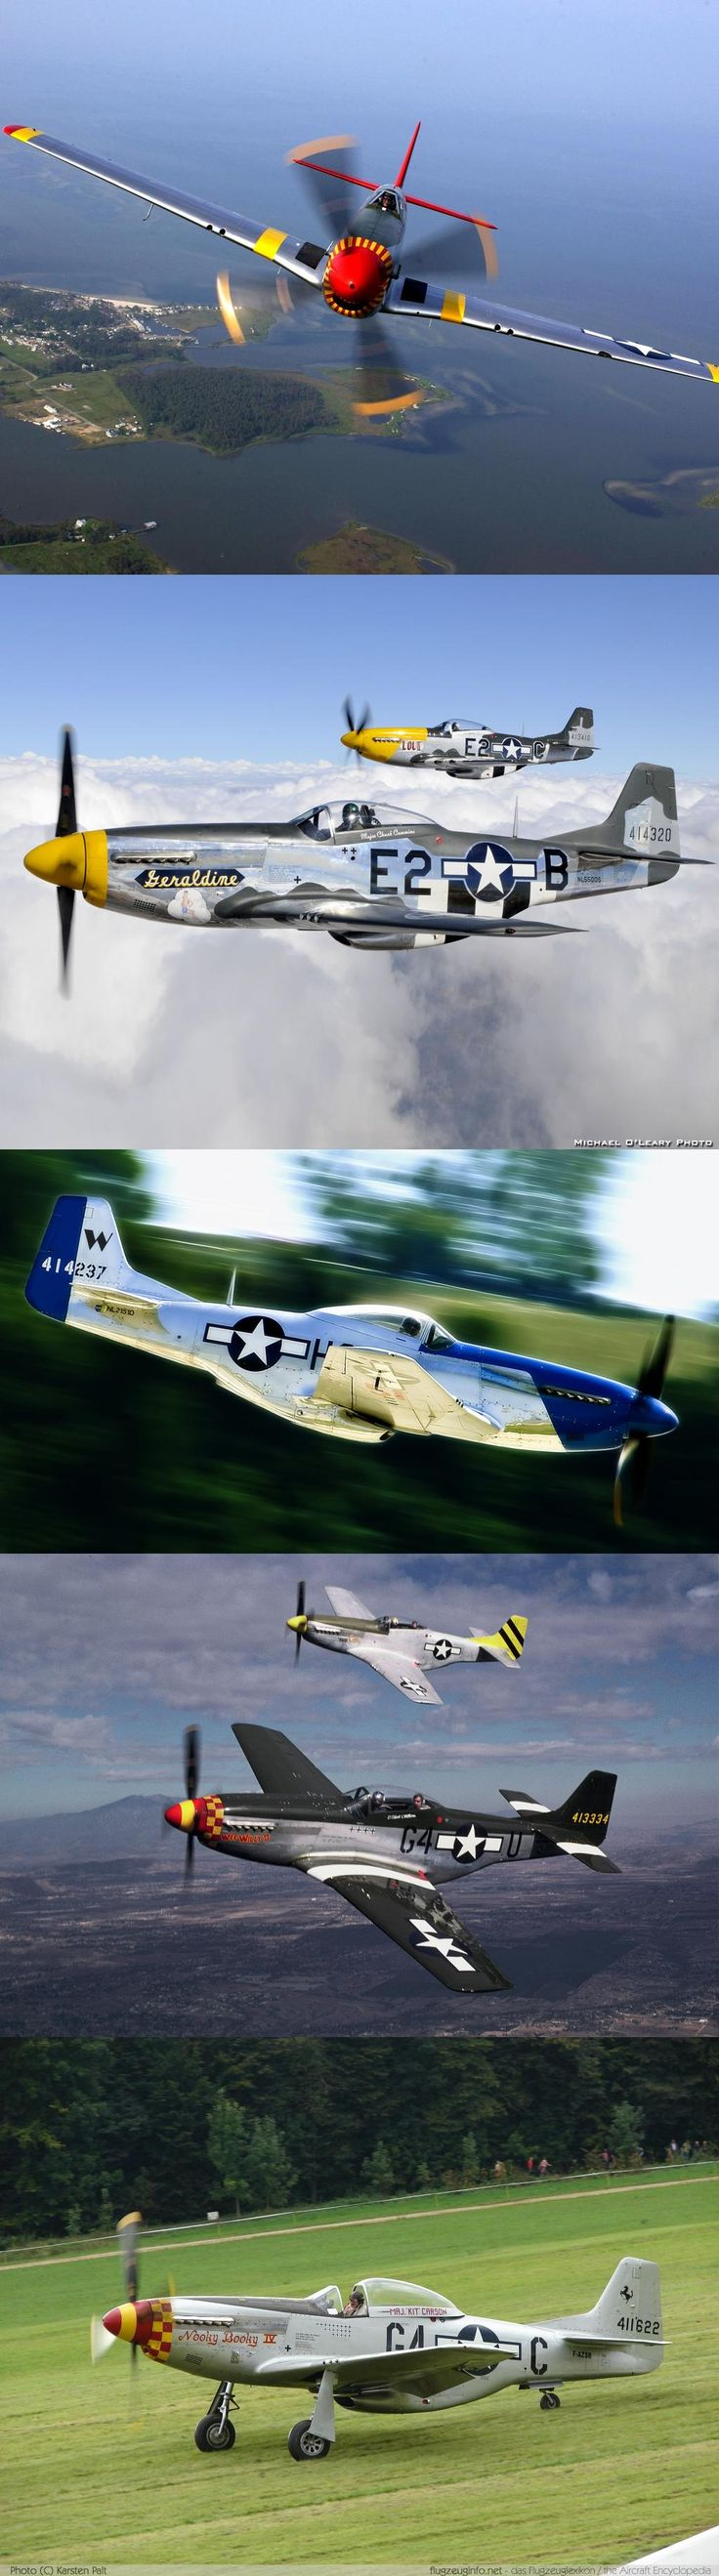 P-51 Mustang #coupon code nicesup123 gets 25% off at  www.Provestra.com www.Skinception.com and www.leadingedgehealth.com